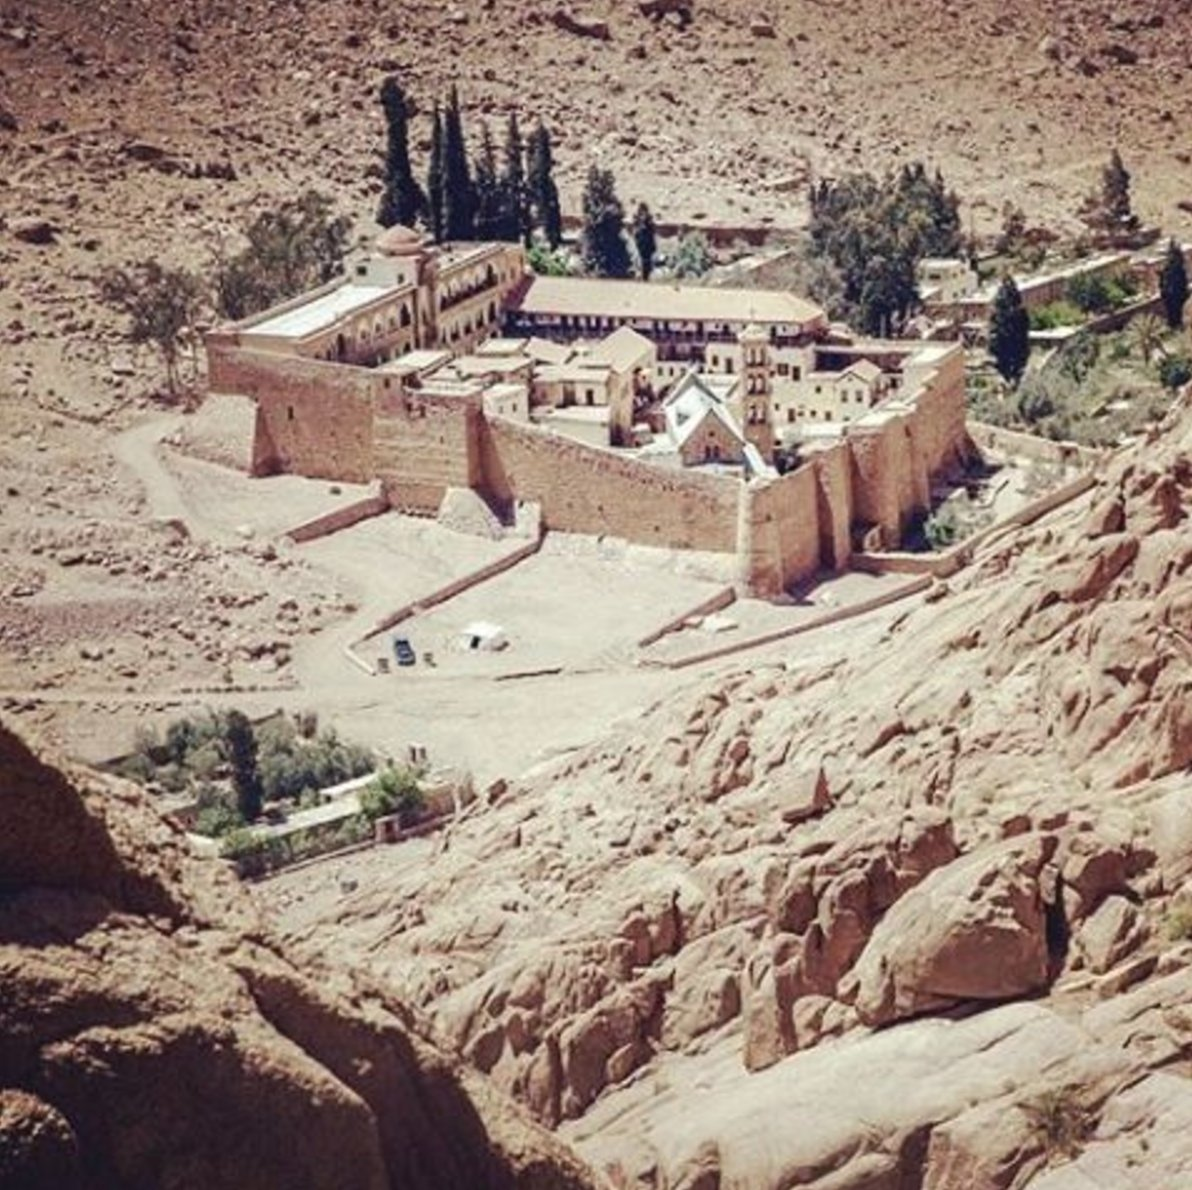 Letter, personal testimony, from Holy Monastery of St. Catherine in #Sinai #Egypt concerning #ISIS terror attack  http://www. instagram.com/p/BTRsjJHhbD_  &nbsp;  <br>http://pic.twitter.com/vBtxW9madR